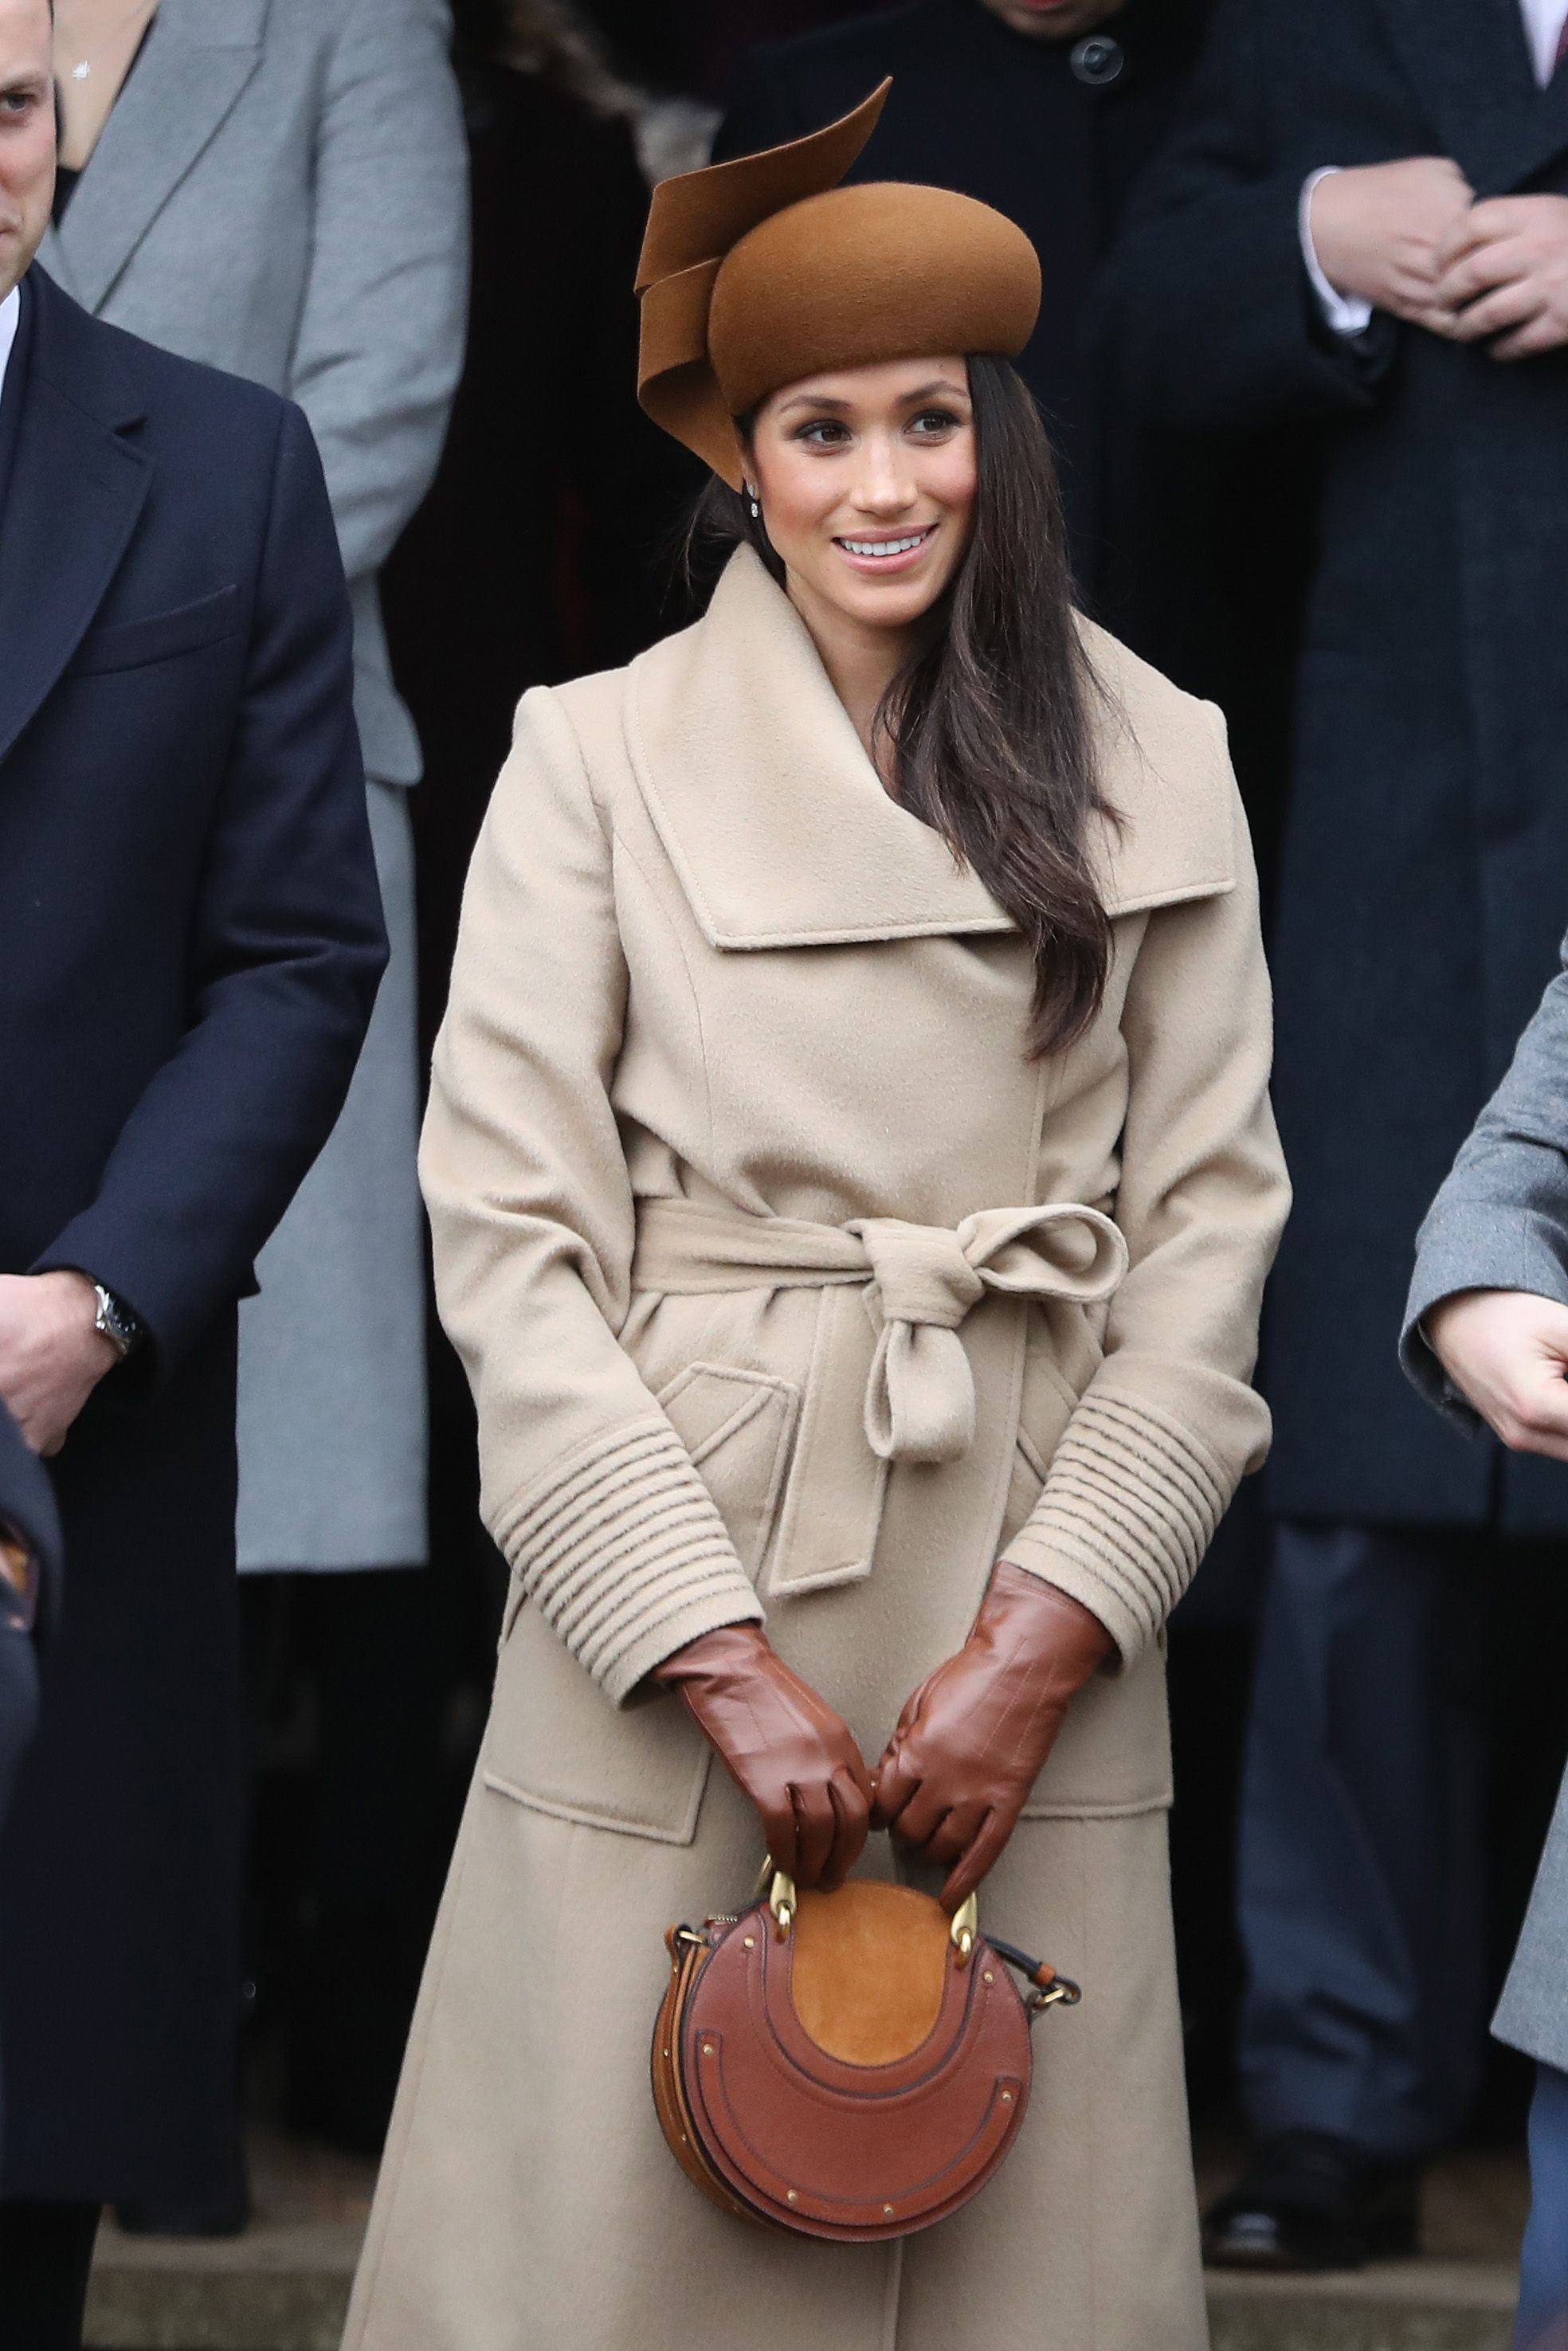 Image result for meghan markle duchess holding clutch